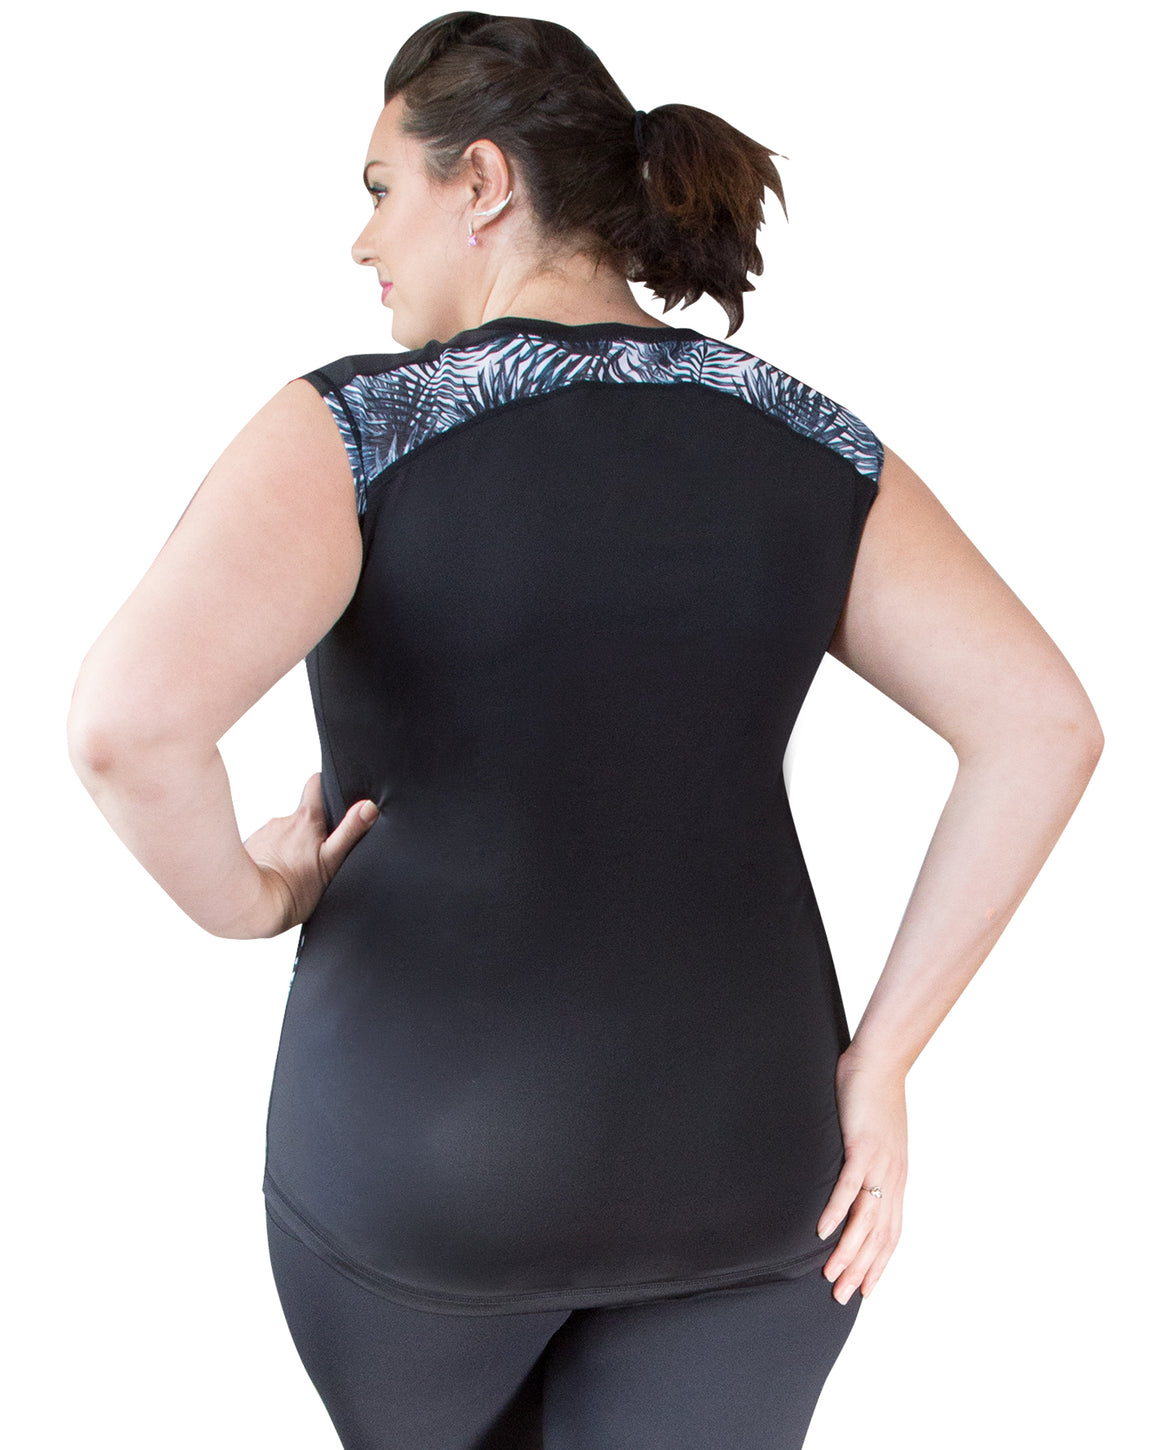 Back of Andi Plus Size Sports Top | Curvy Chic Sports